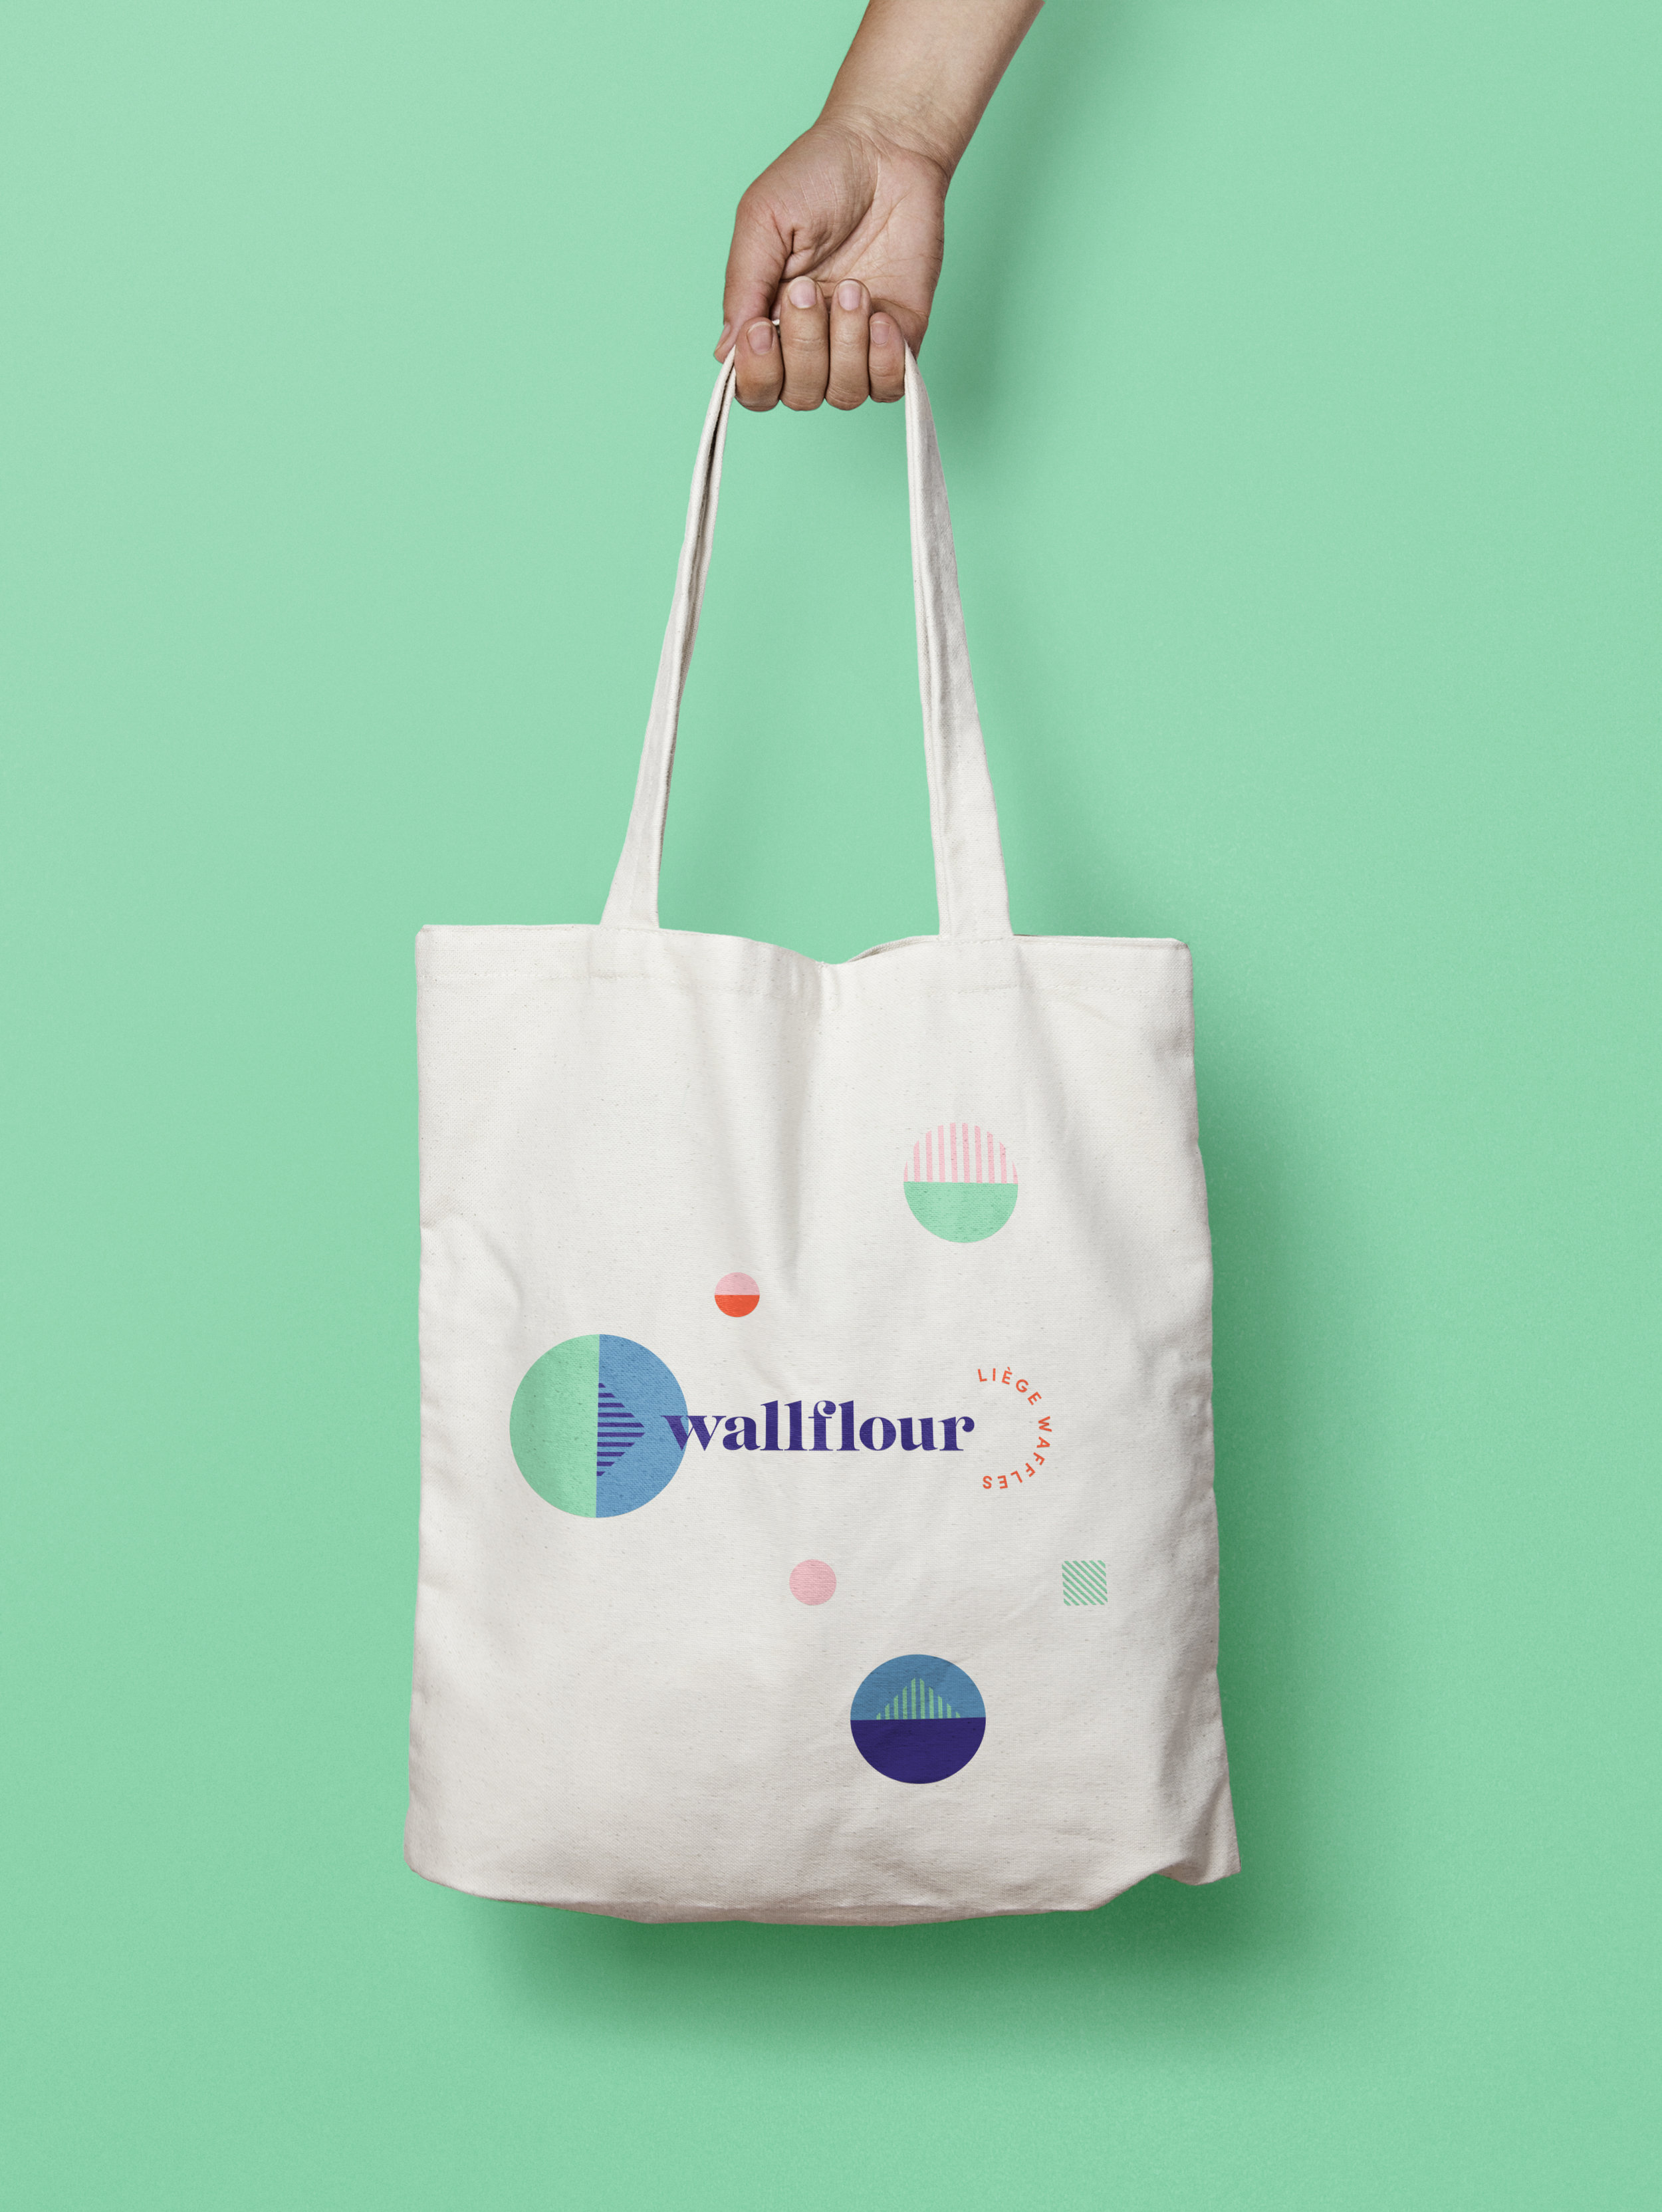 3_Canvas Tote Bag MockUp.jpg